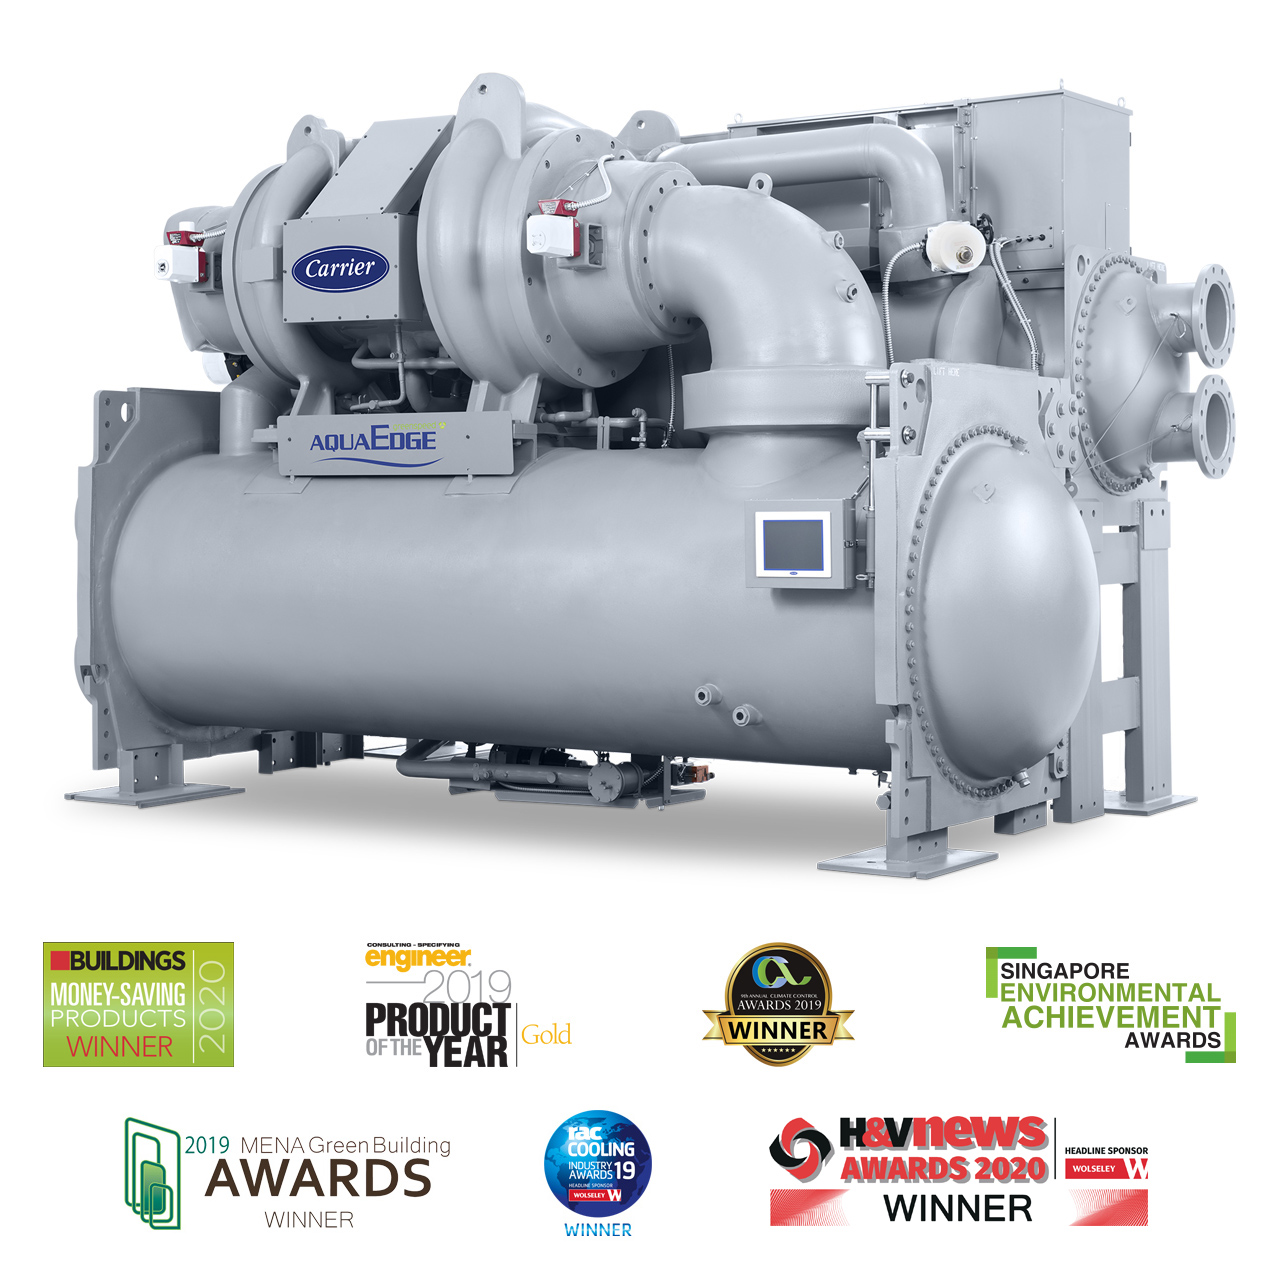 The AquaEdge® 19DV Water-Cooled Centrifugal Chiller is the Ultimate Innovation in Heating and Cooling Technology.